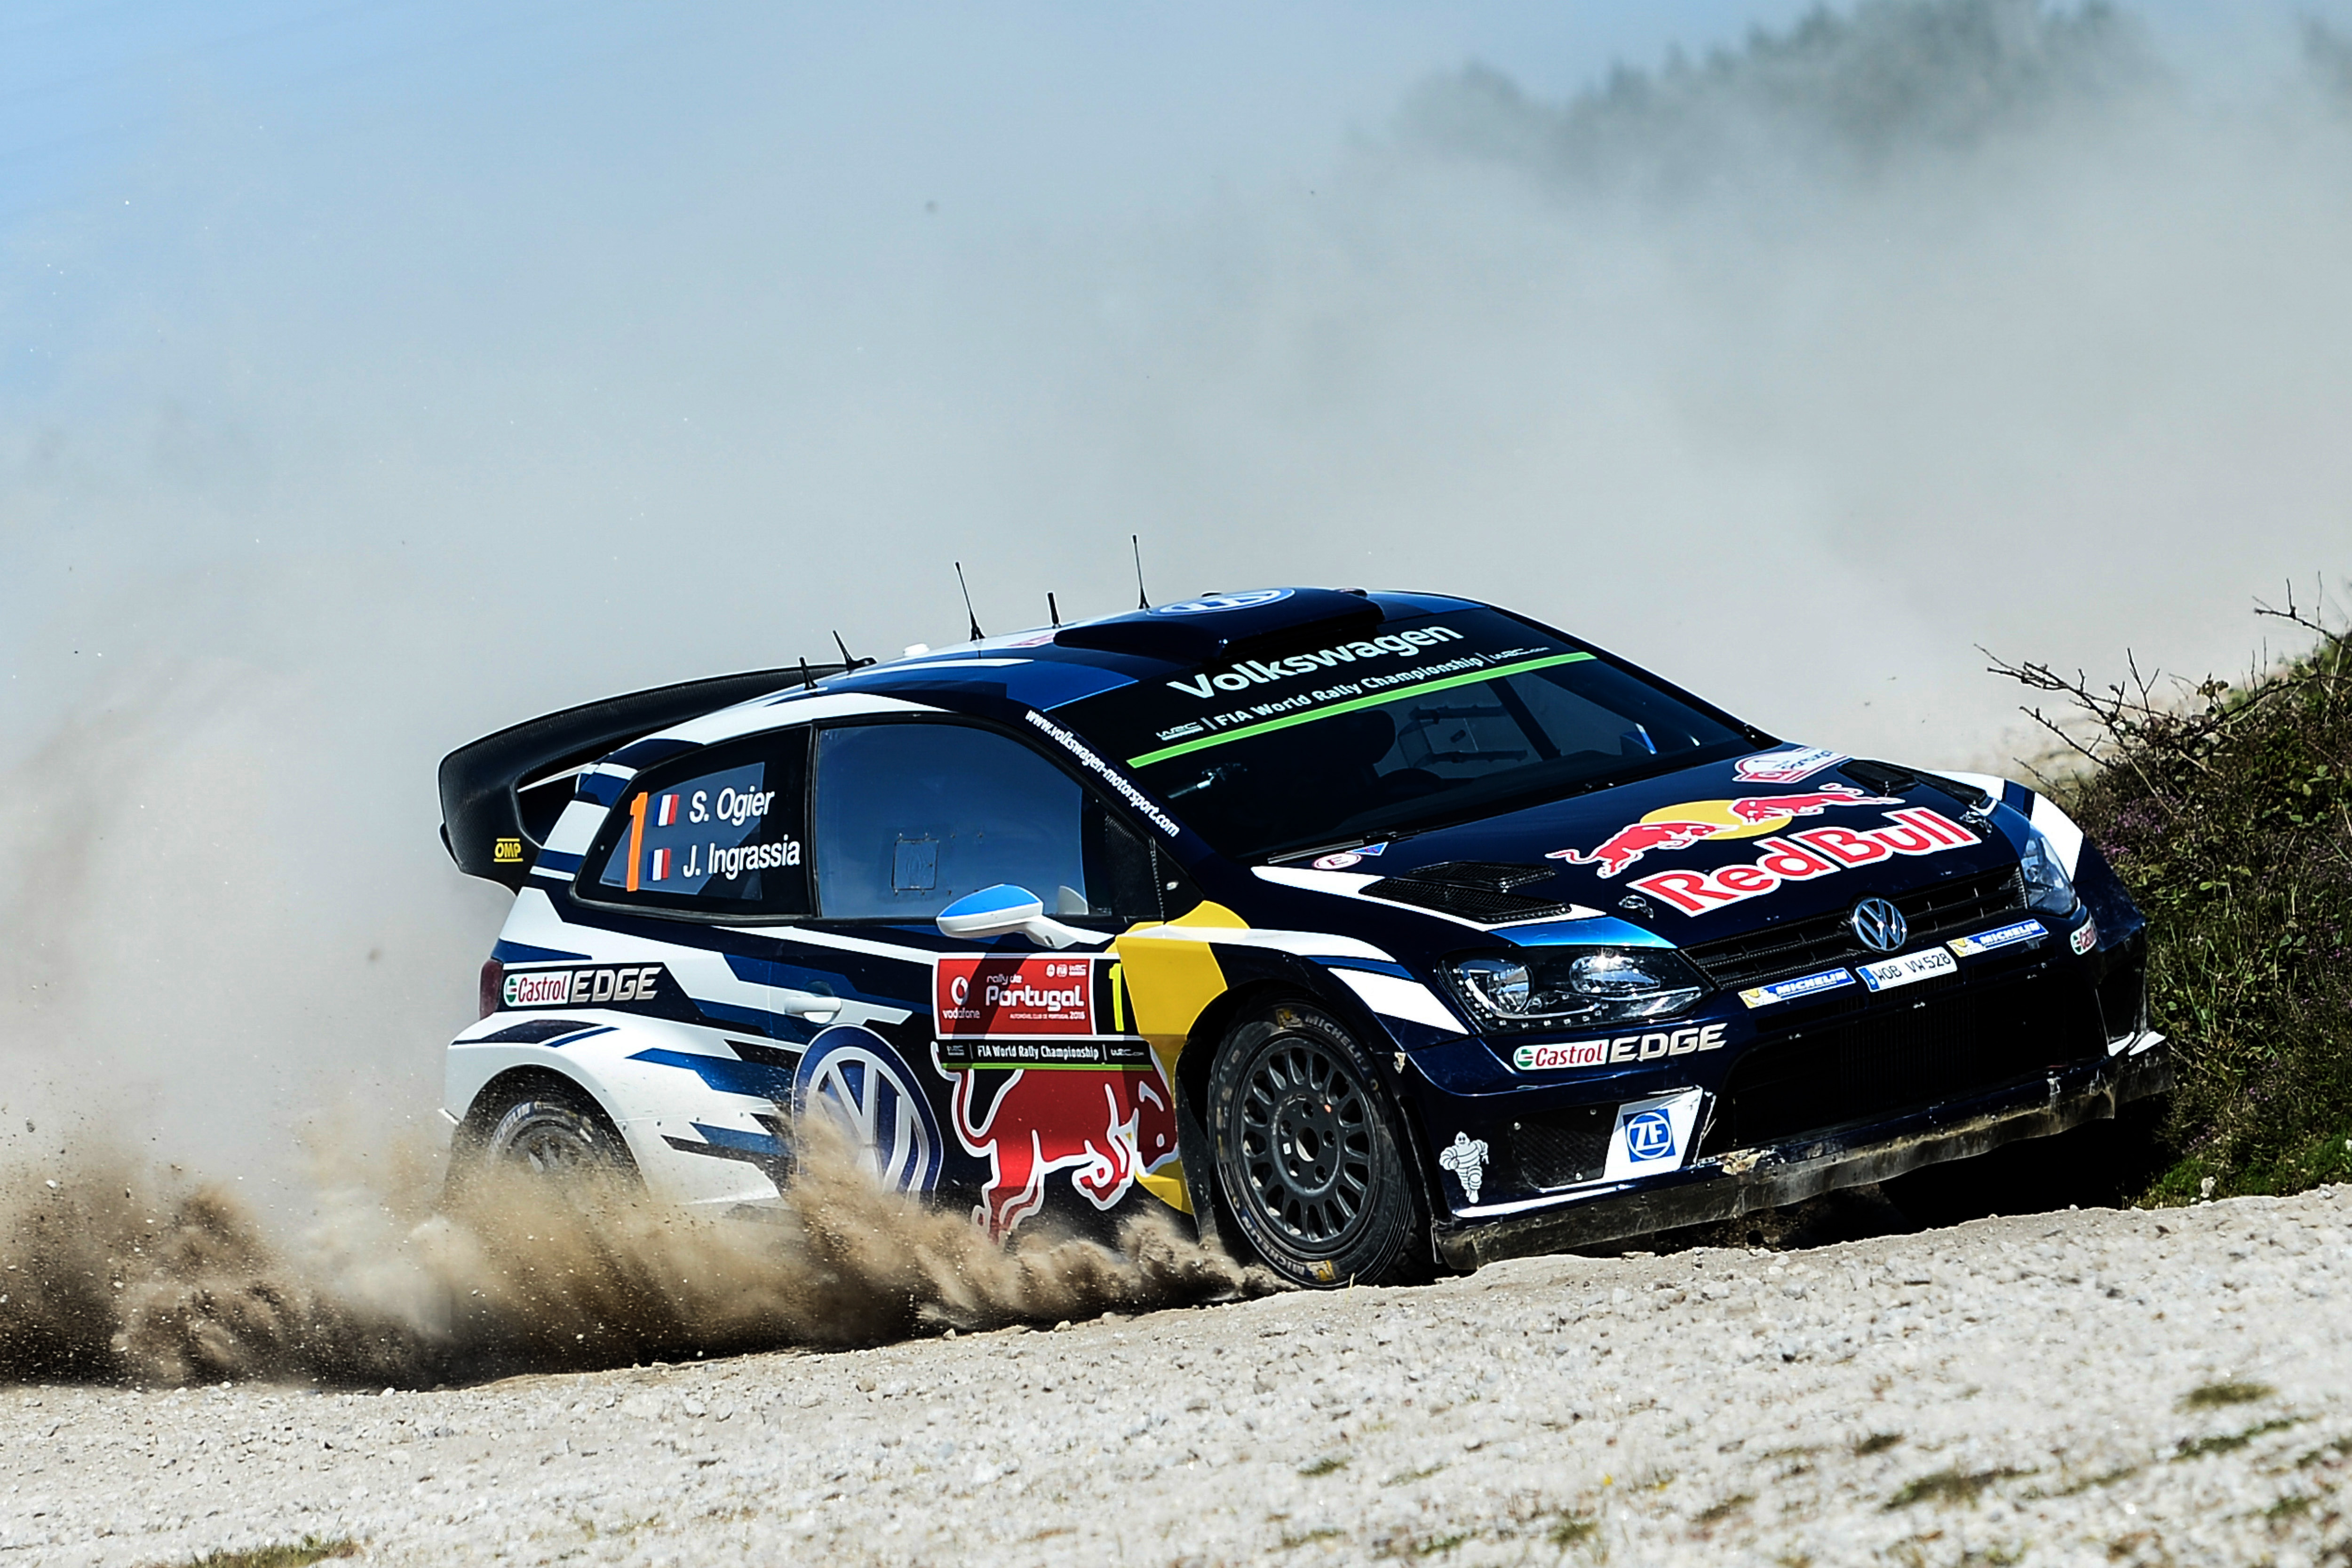 VOLKSWAGEN ON COURSE FOR THE PODIUM WITH OGIER AND MIKKELSEN